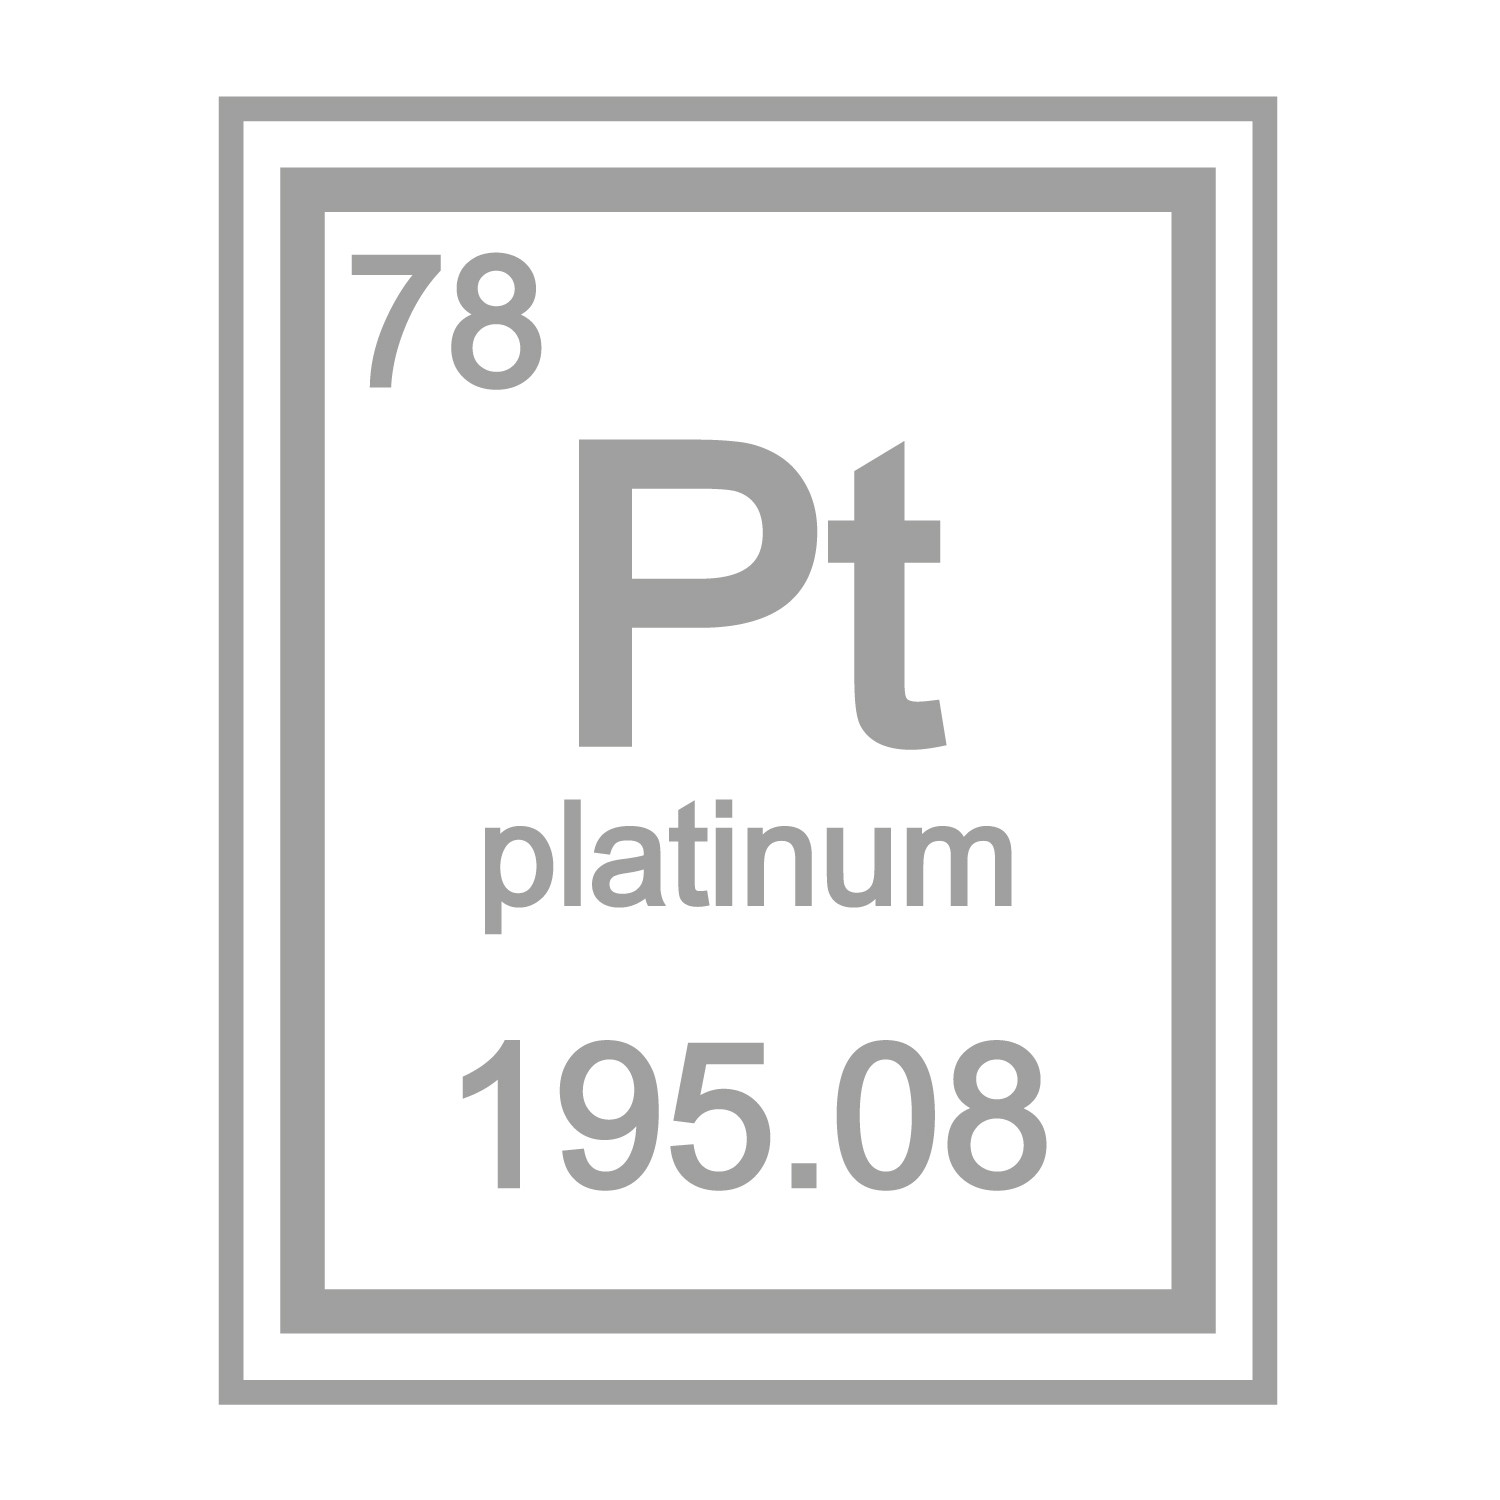 image free chemical vector royalty element platinum